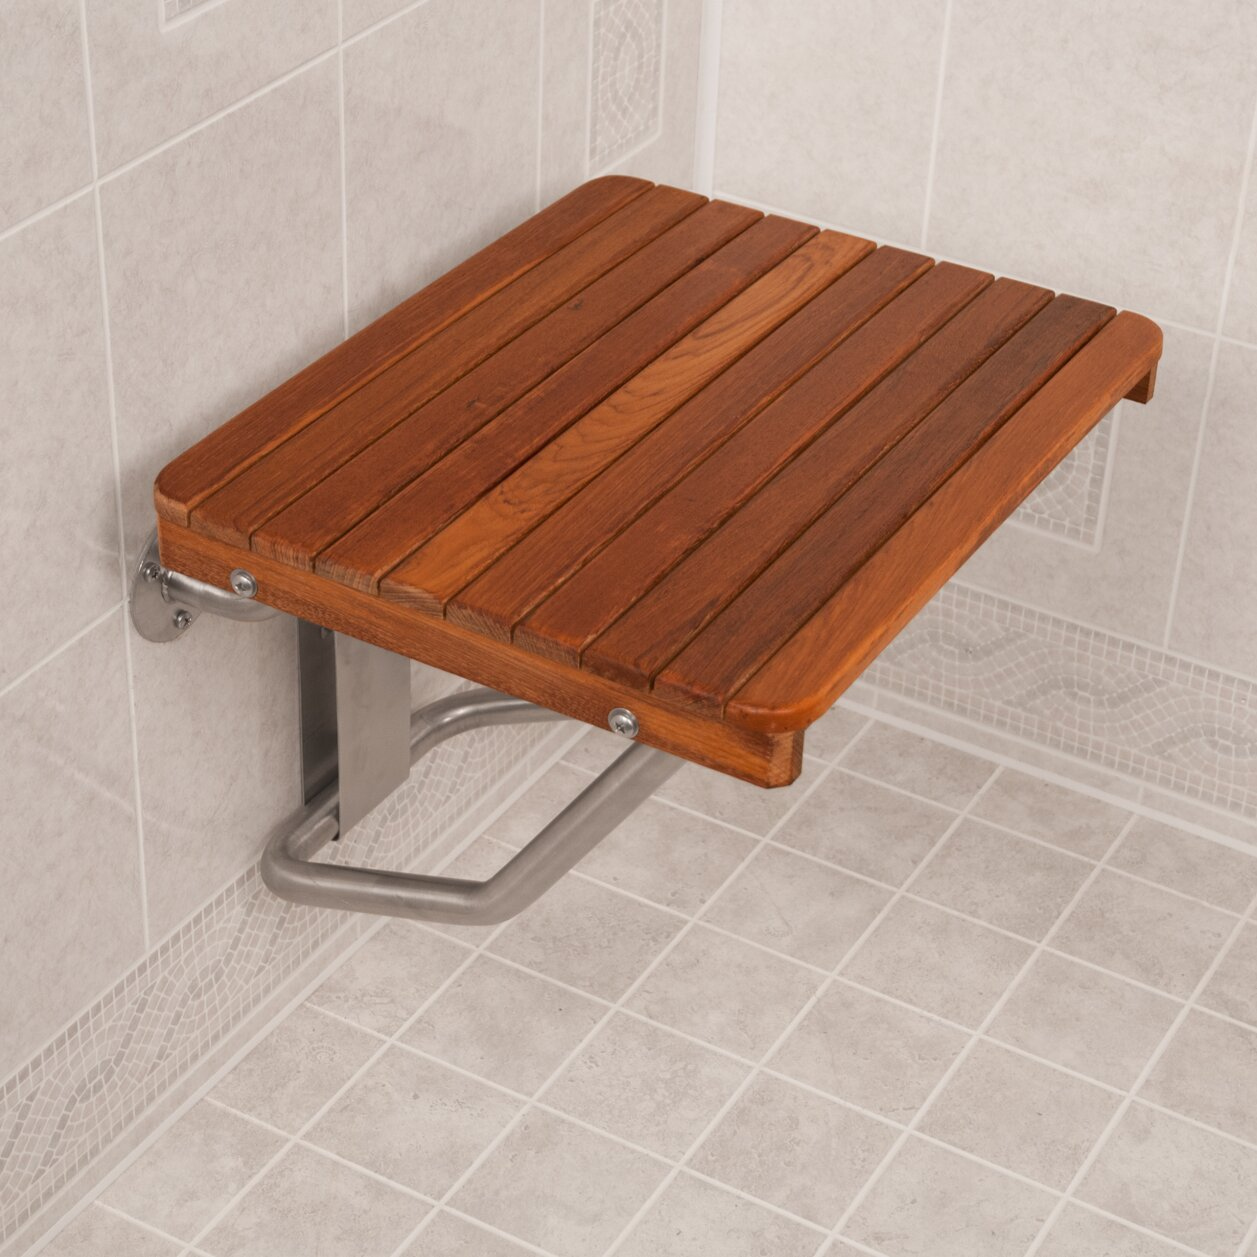 Wood Shower Benches. Gallery Of Parquet Wooden Shower Bench By ...